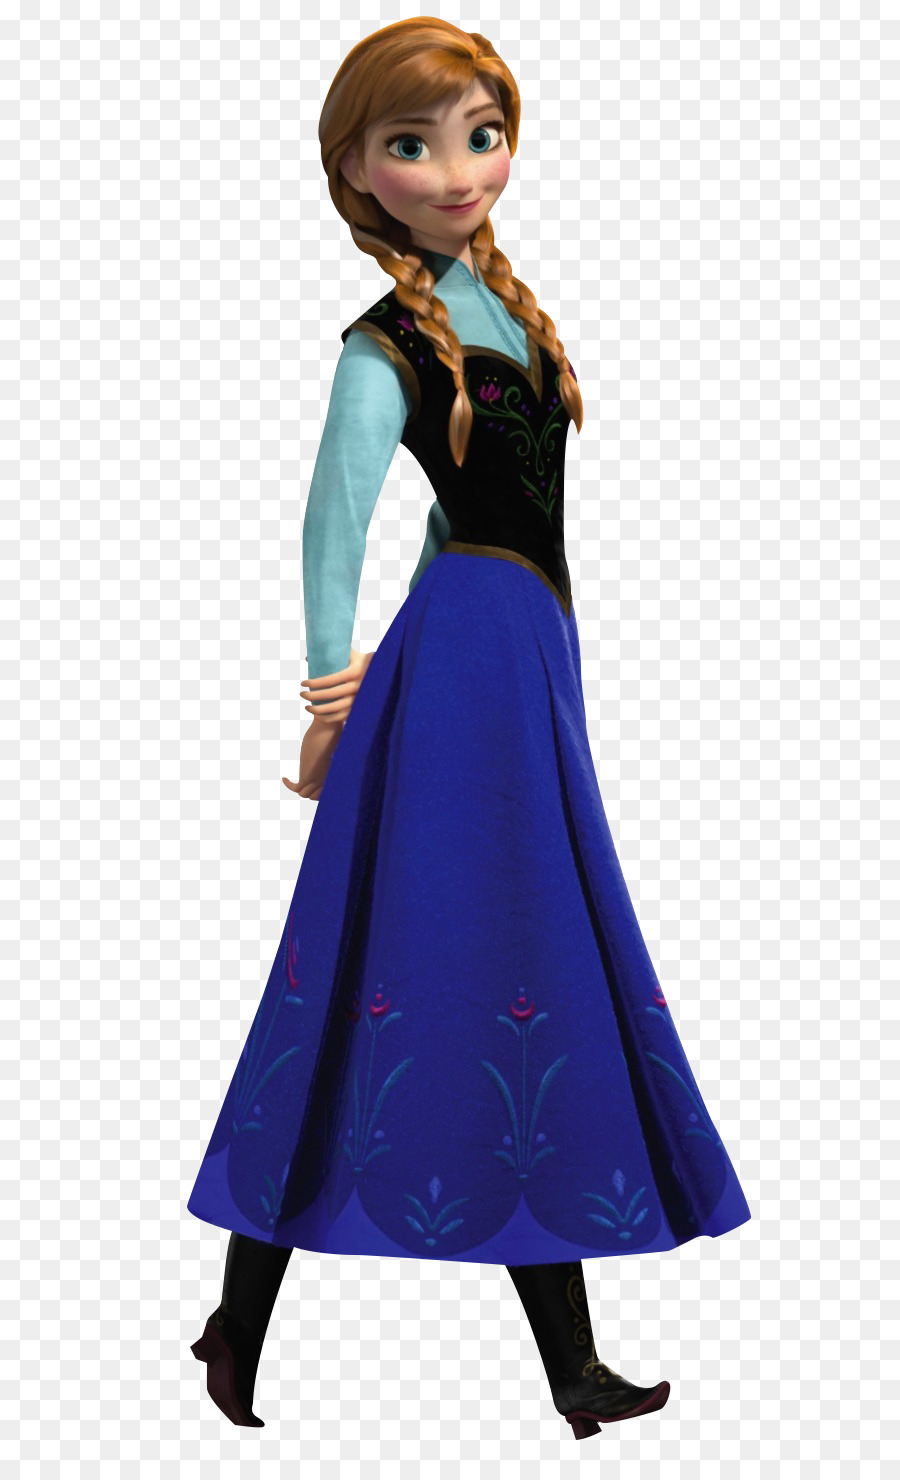 elsa kristoff frozen anna olaf anna frozen png download 673 1462